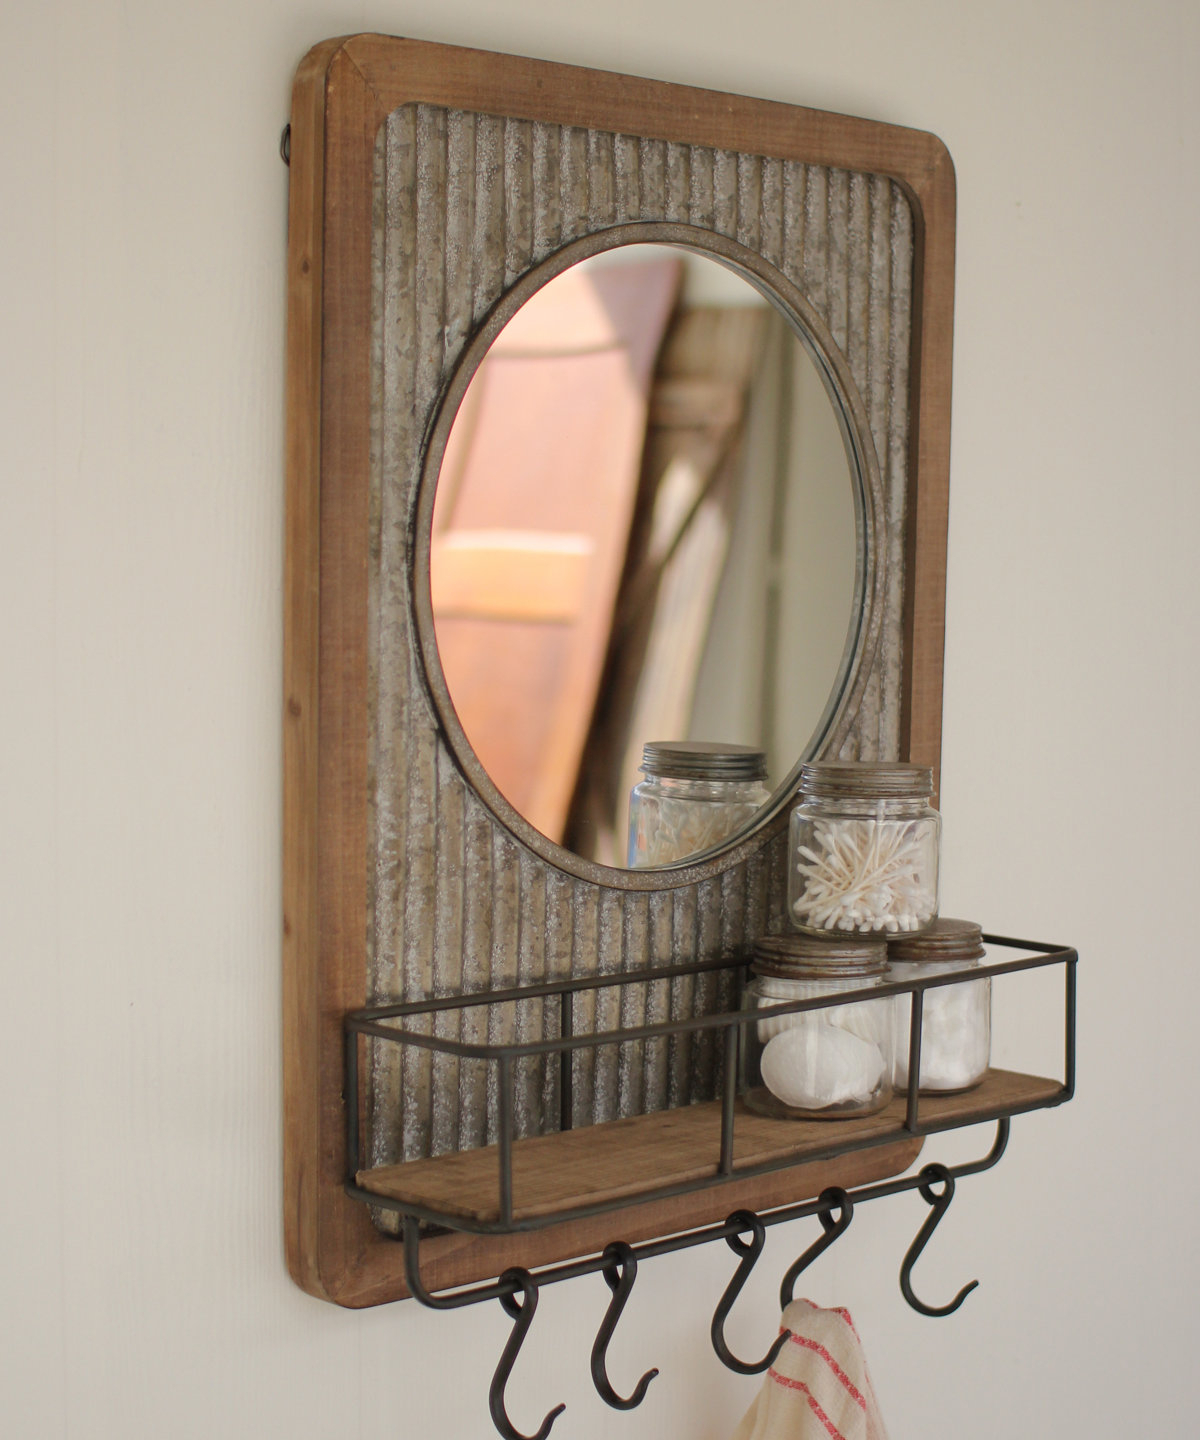 Adalheid Corrugated Wood Shelf Accent Mirror Regarding Well Known Longwood Rustic Beveled Accent Mirrors (View 20 of 20)